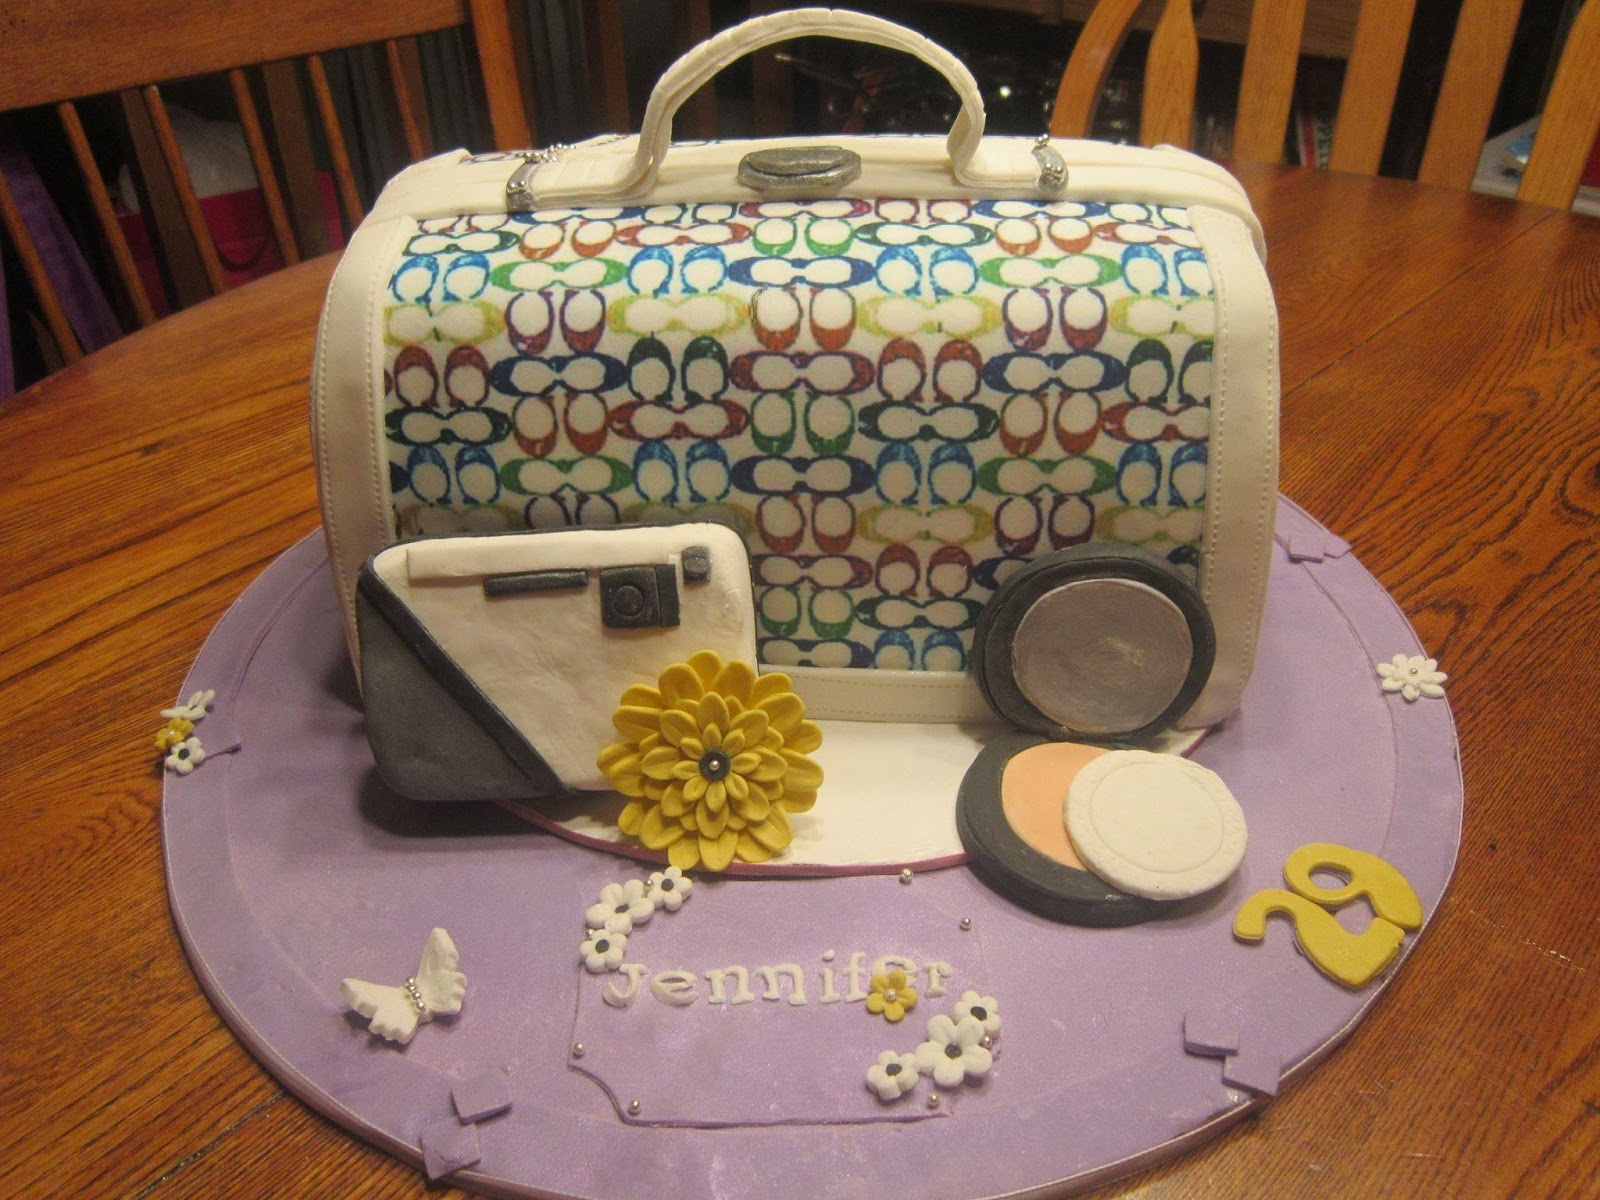 Designer Handbag Coach Purse Cake